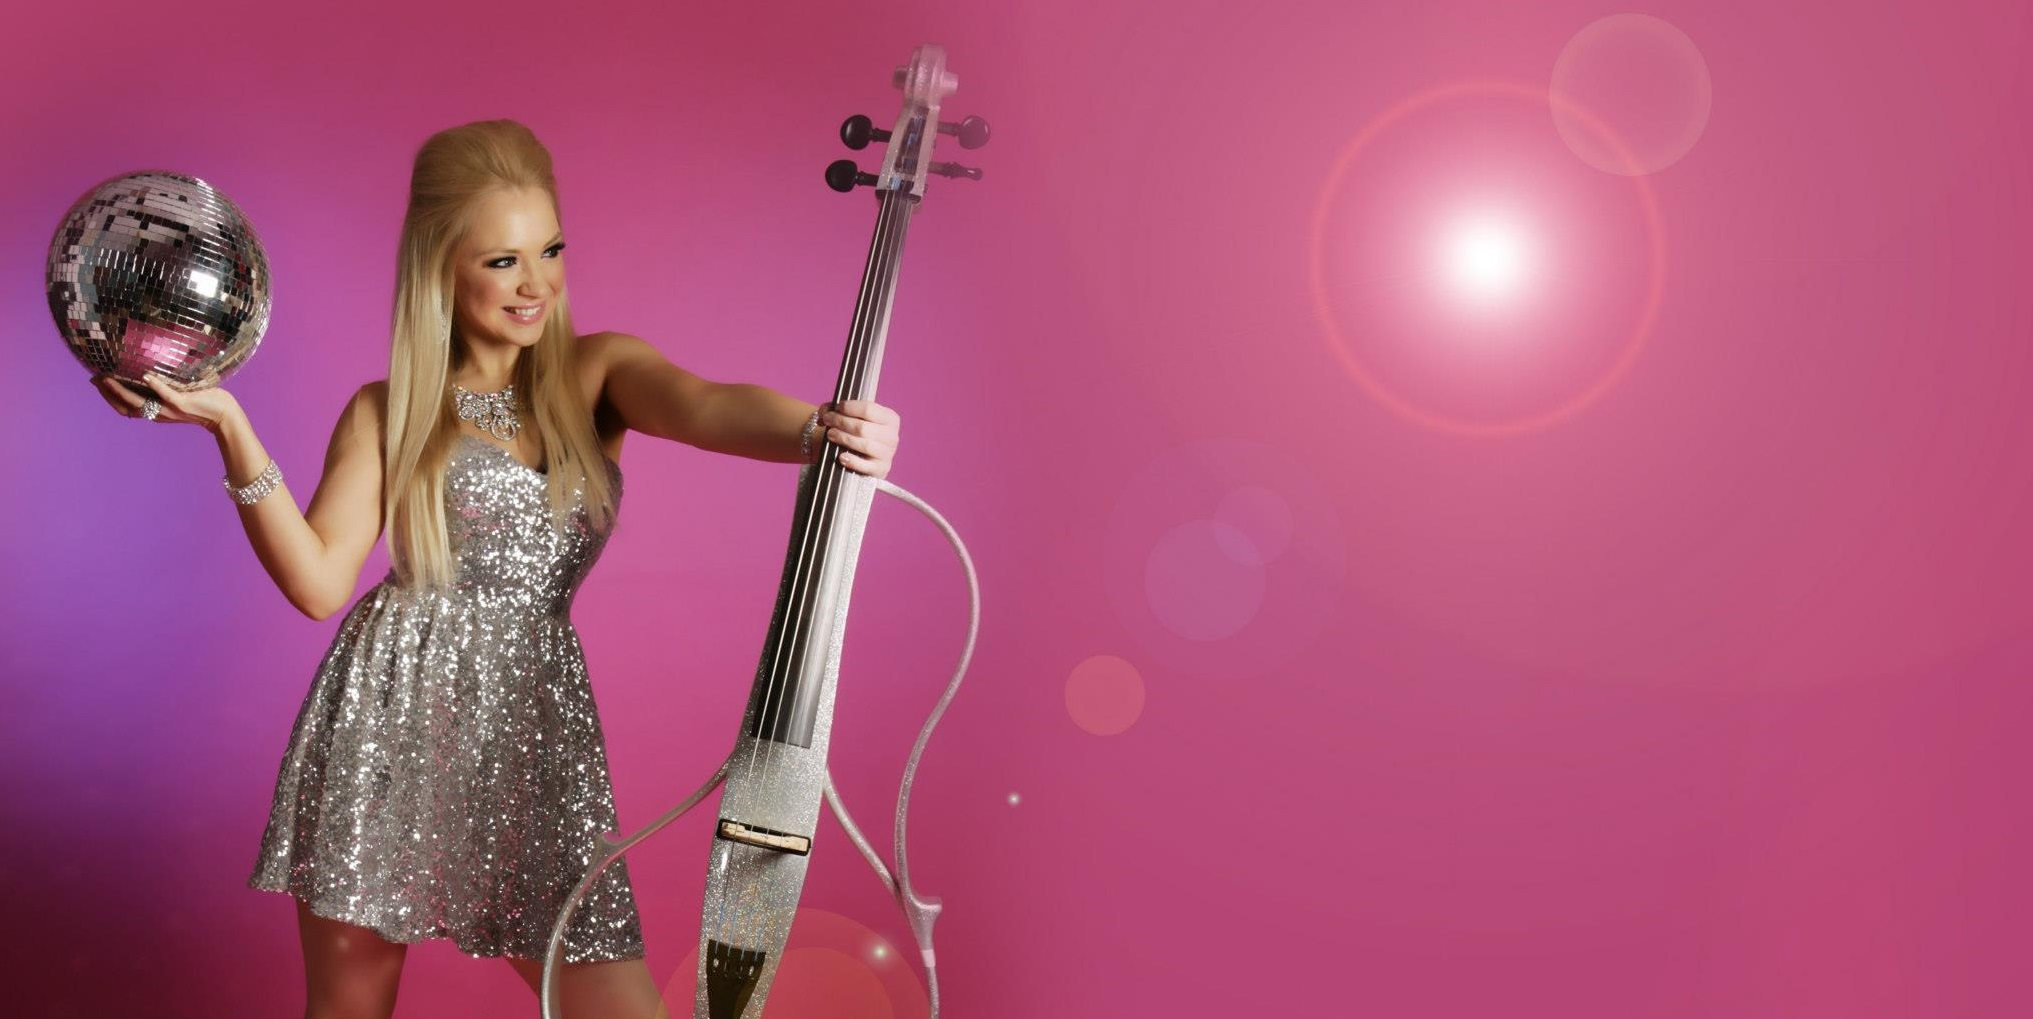 Lizzy may - electric cello 4